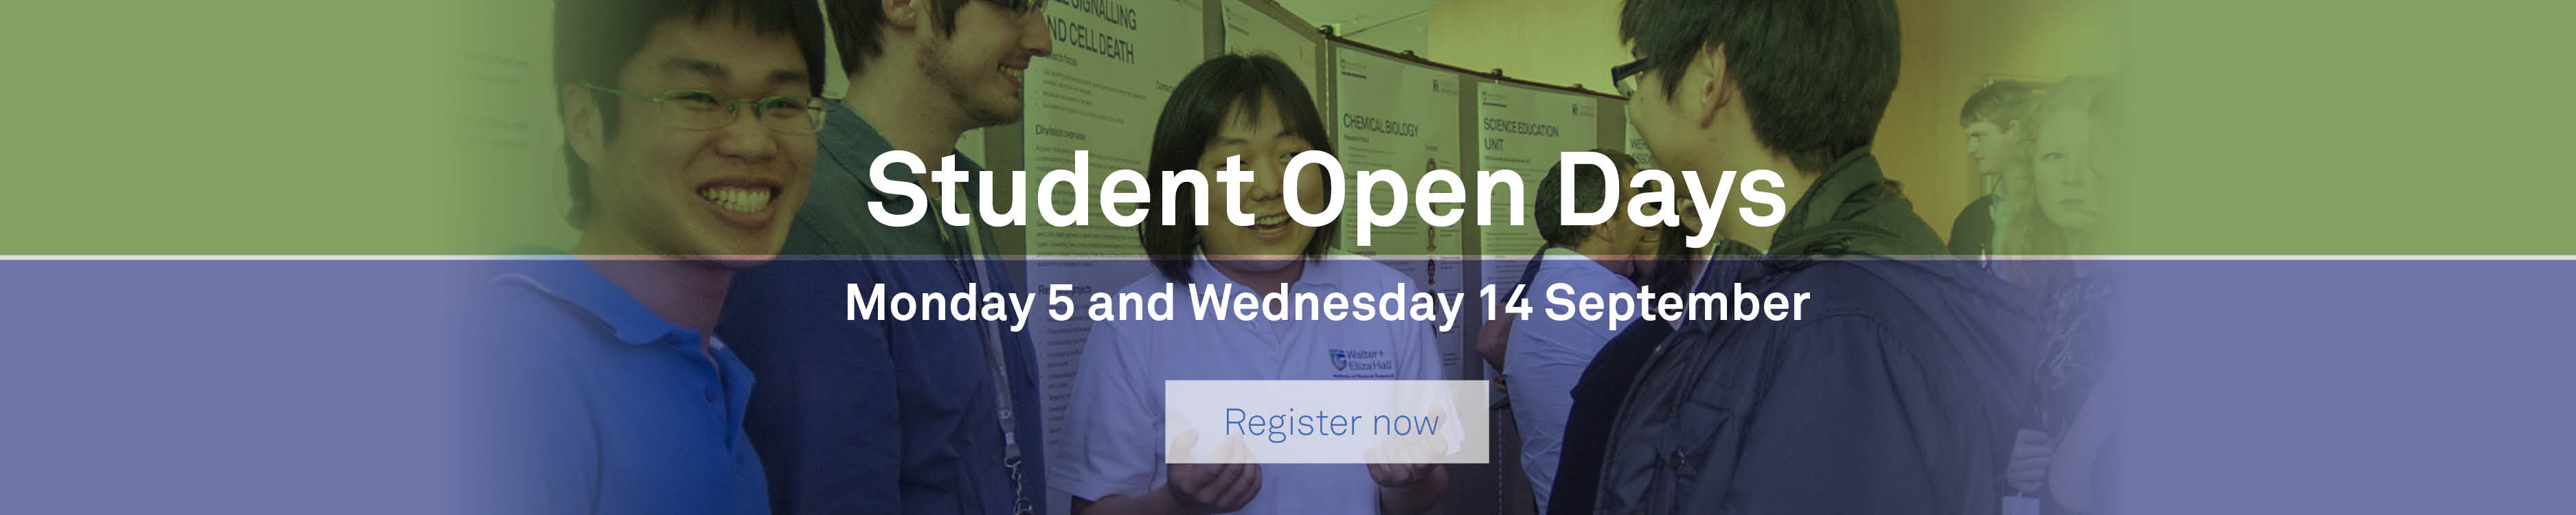 Student Open Day event information